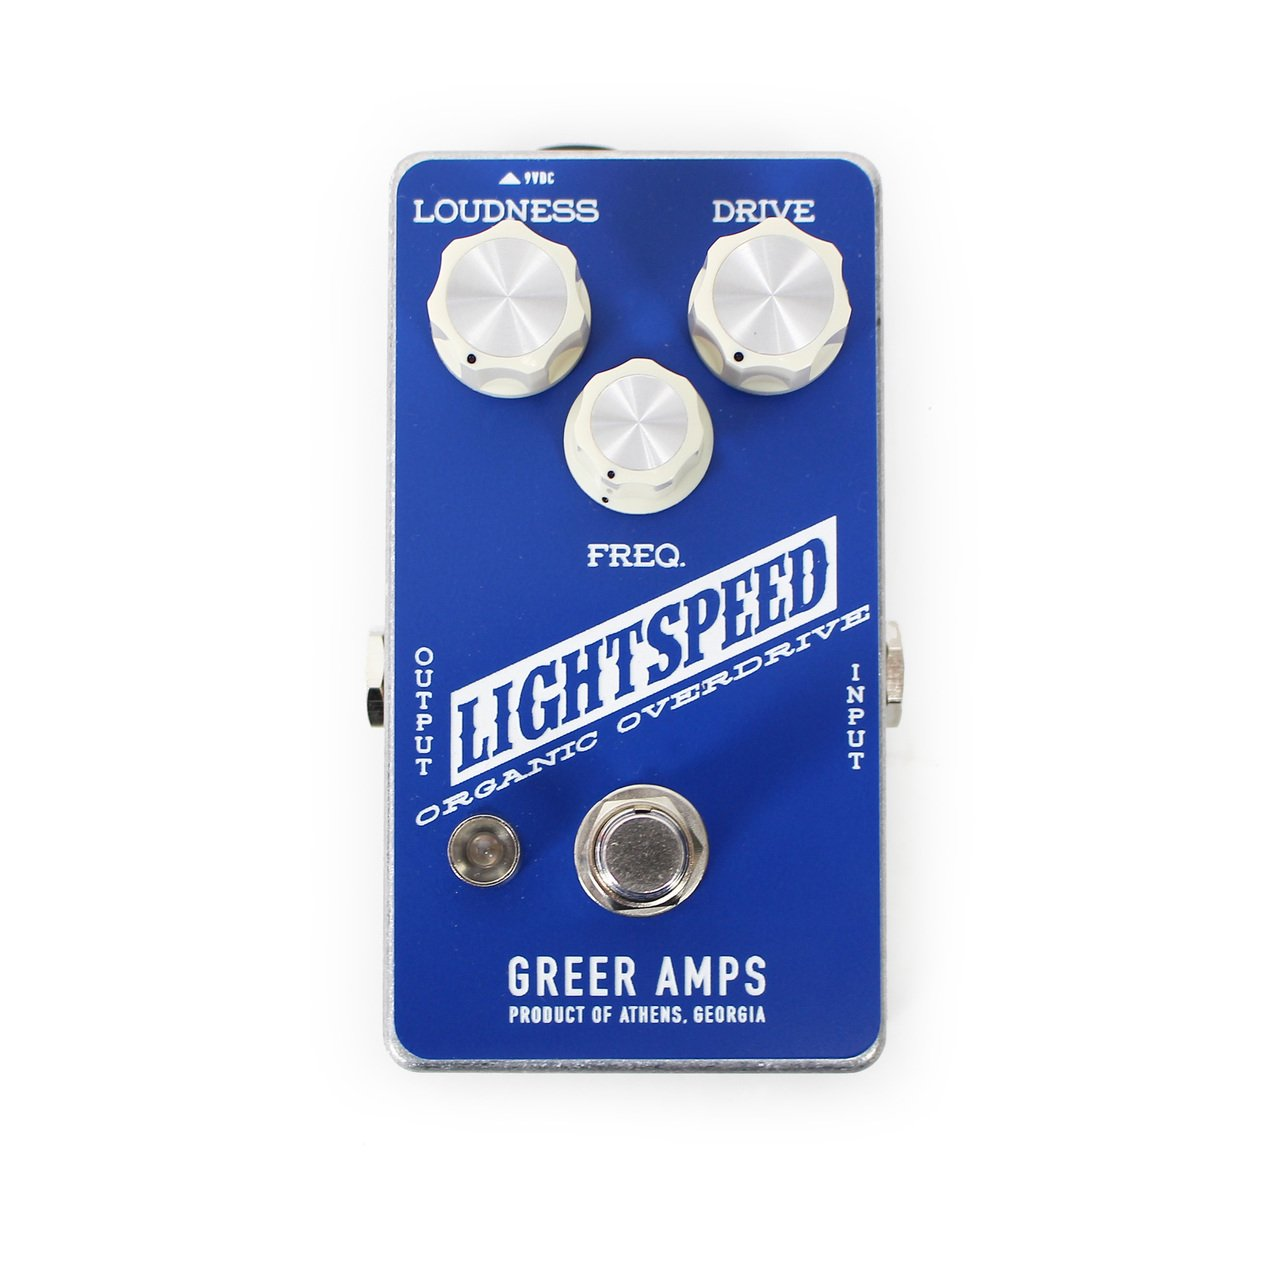 Top 13 Best Overdrive Pedal Reviews in 2020 13